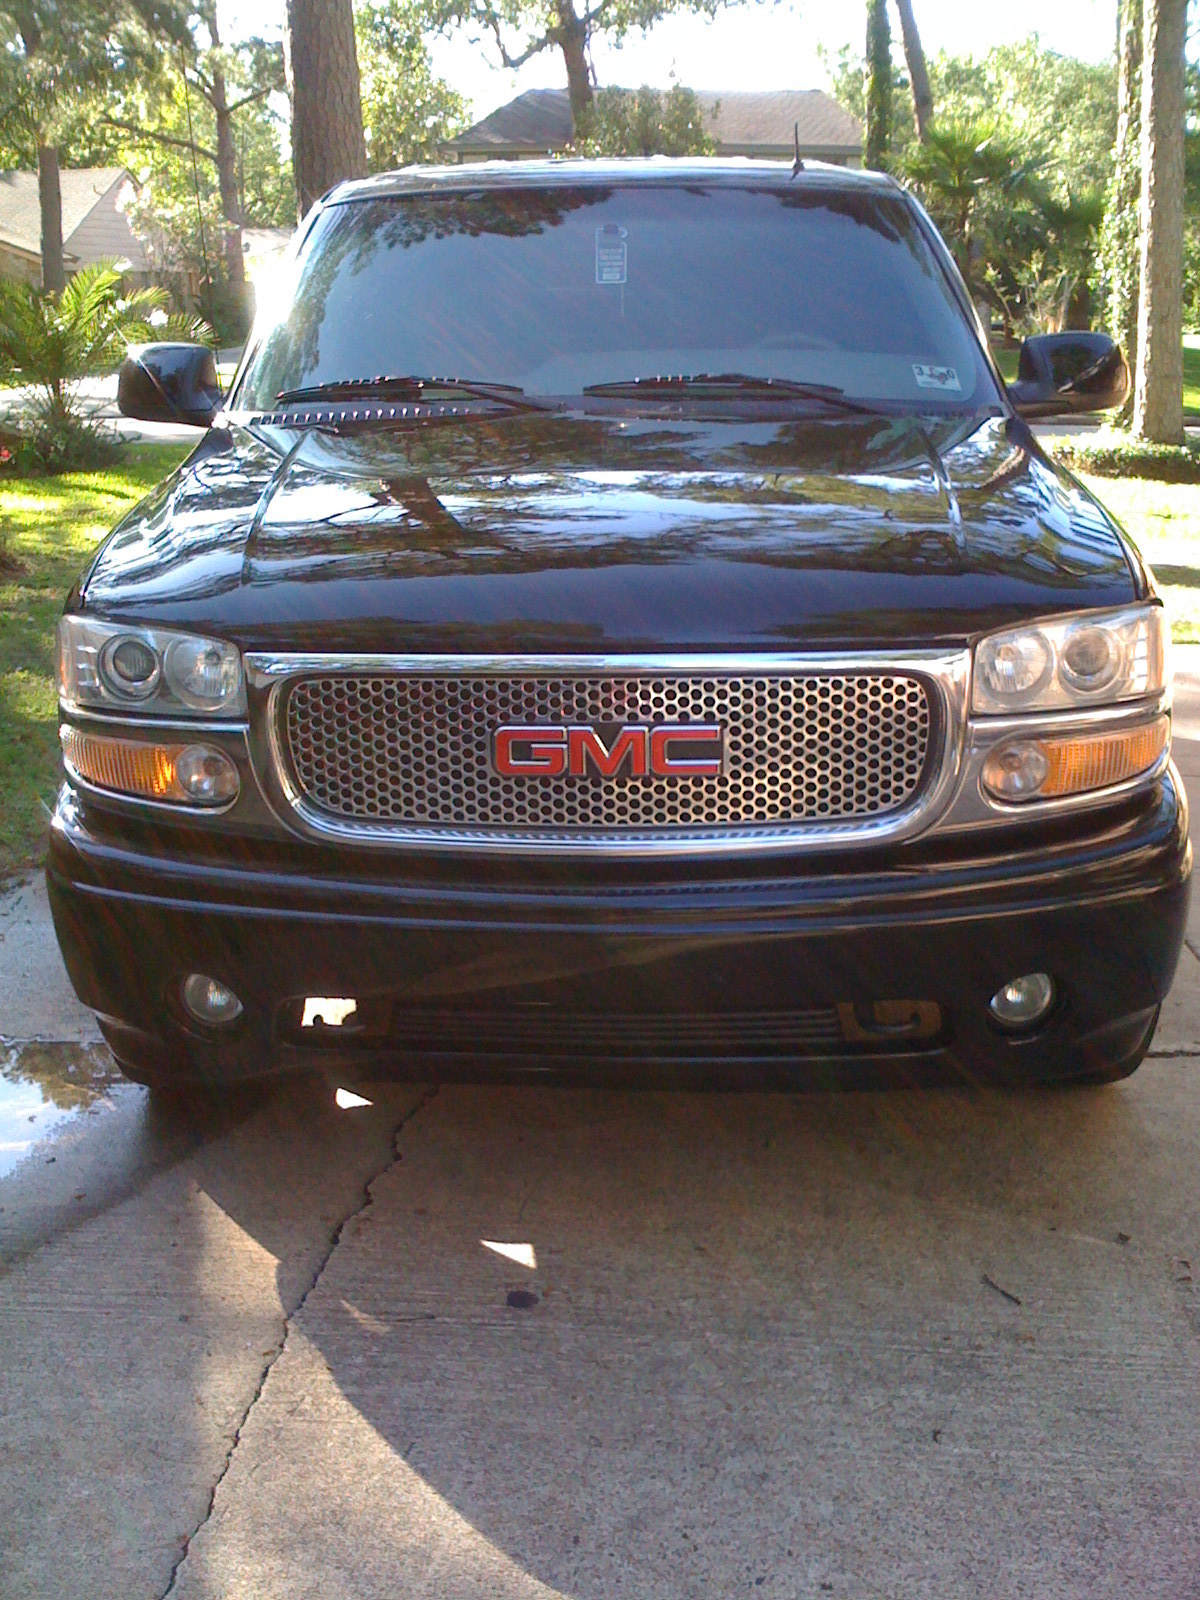 kj123 39 s 2002 gmc yukon denali in houston tx. Black Bedroom Furniture Sets. Home Design Ideas